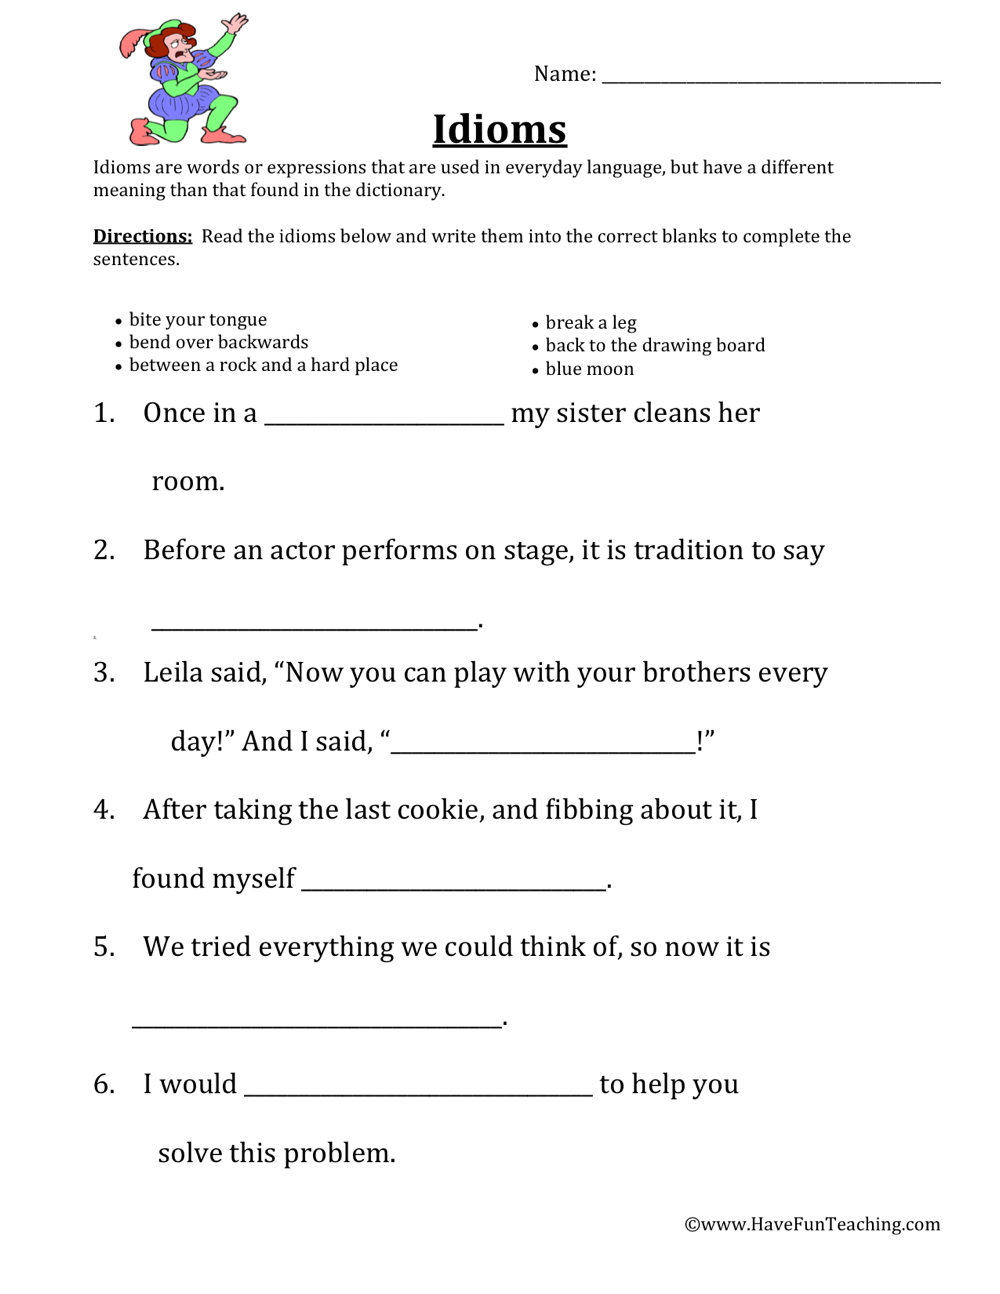 idioms-worksheet-2